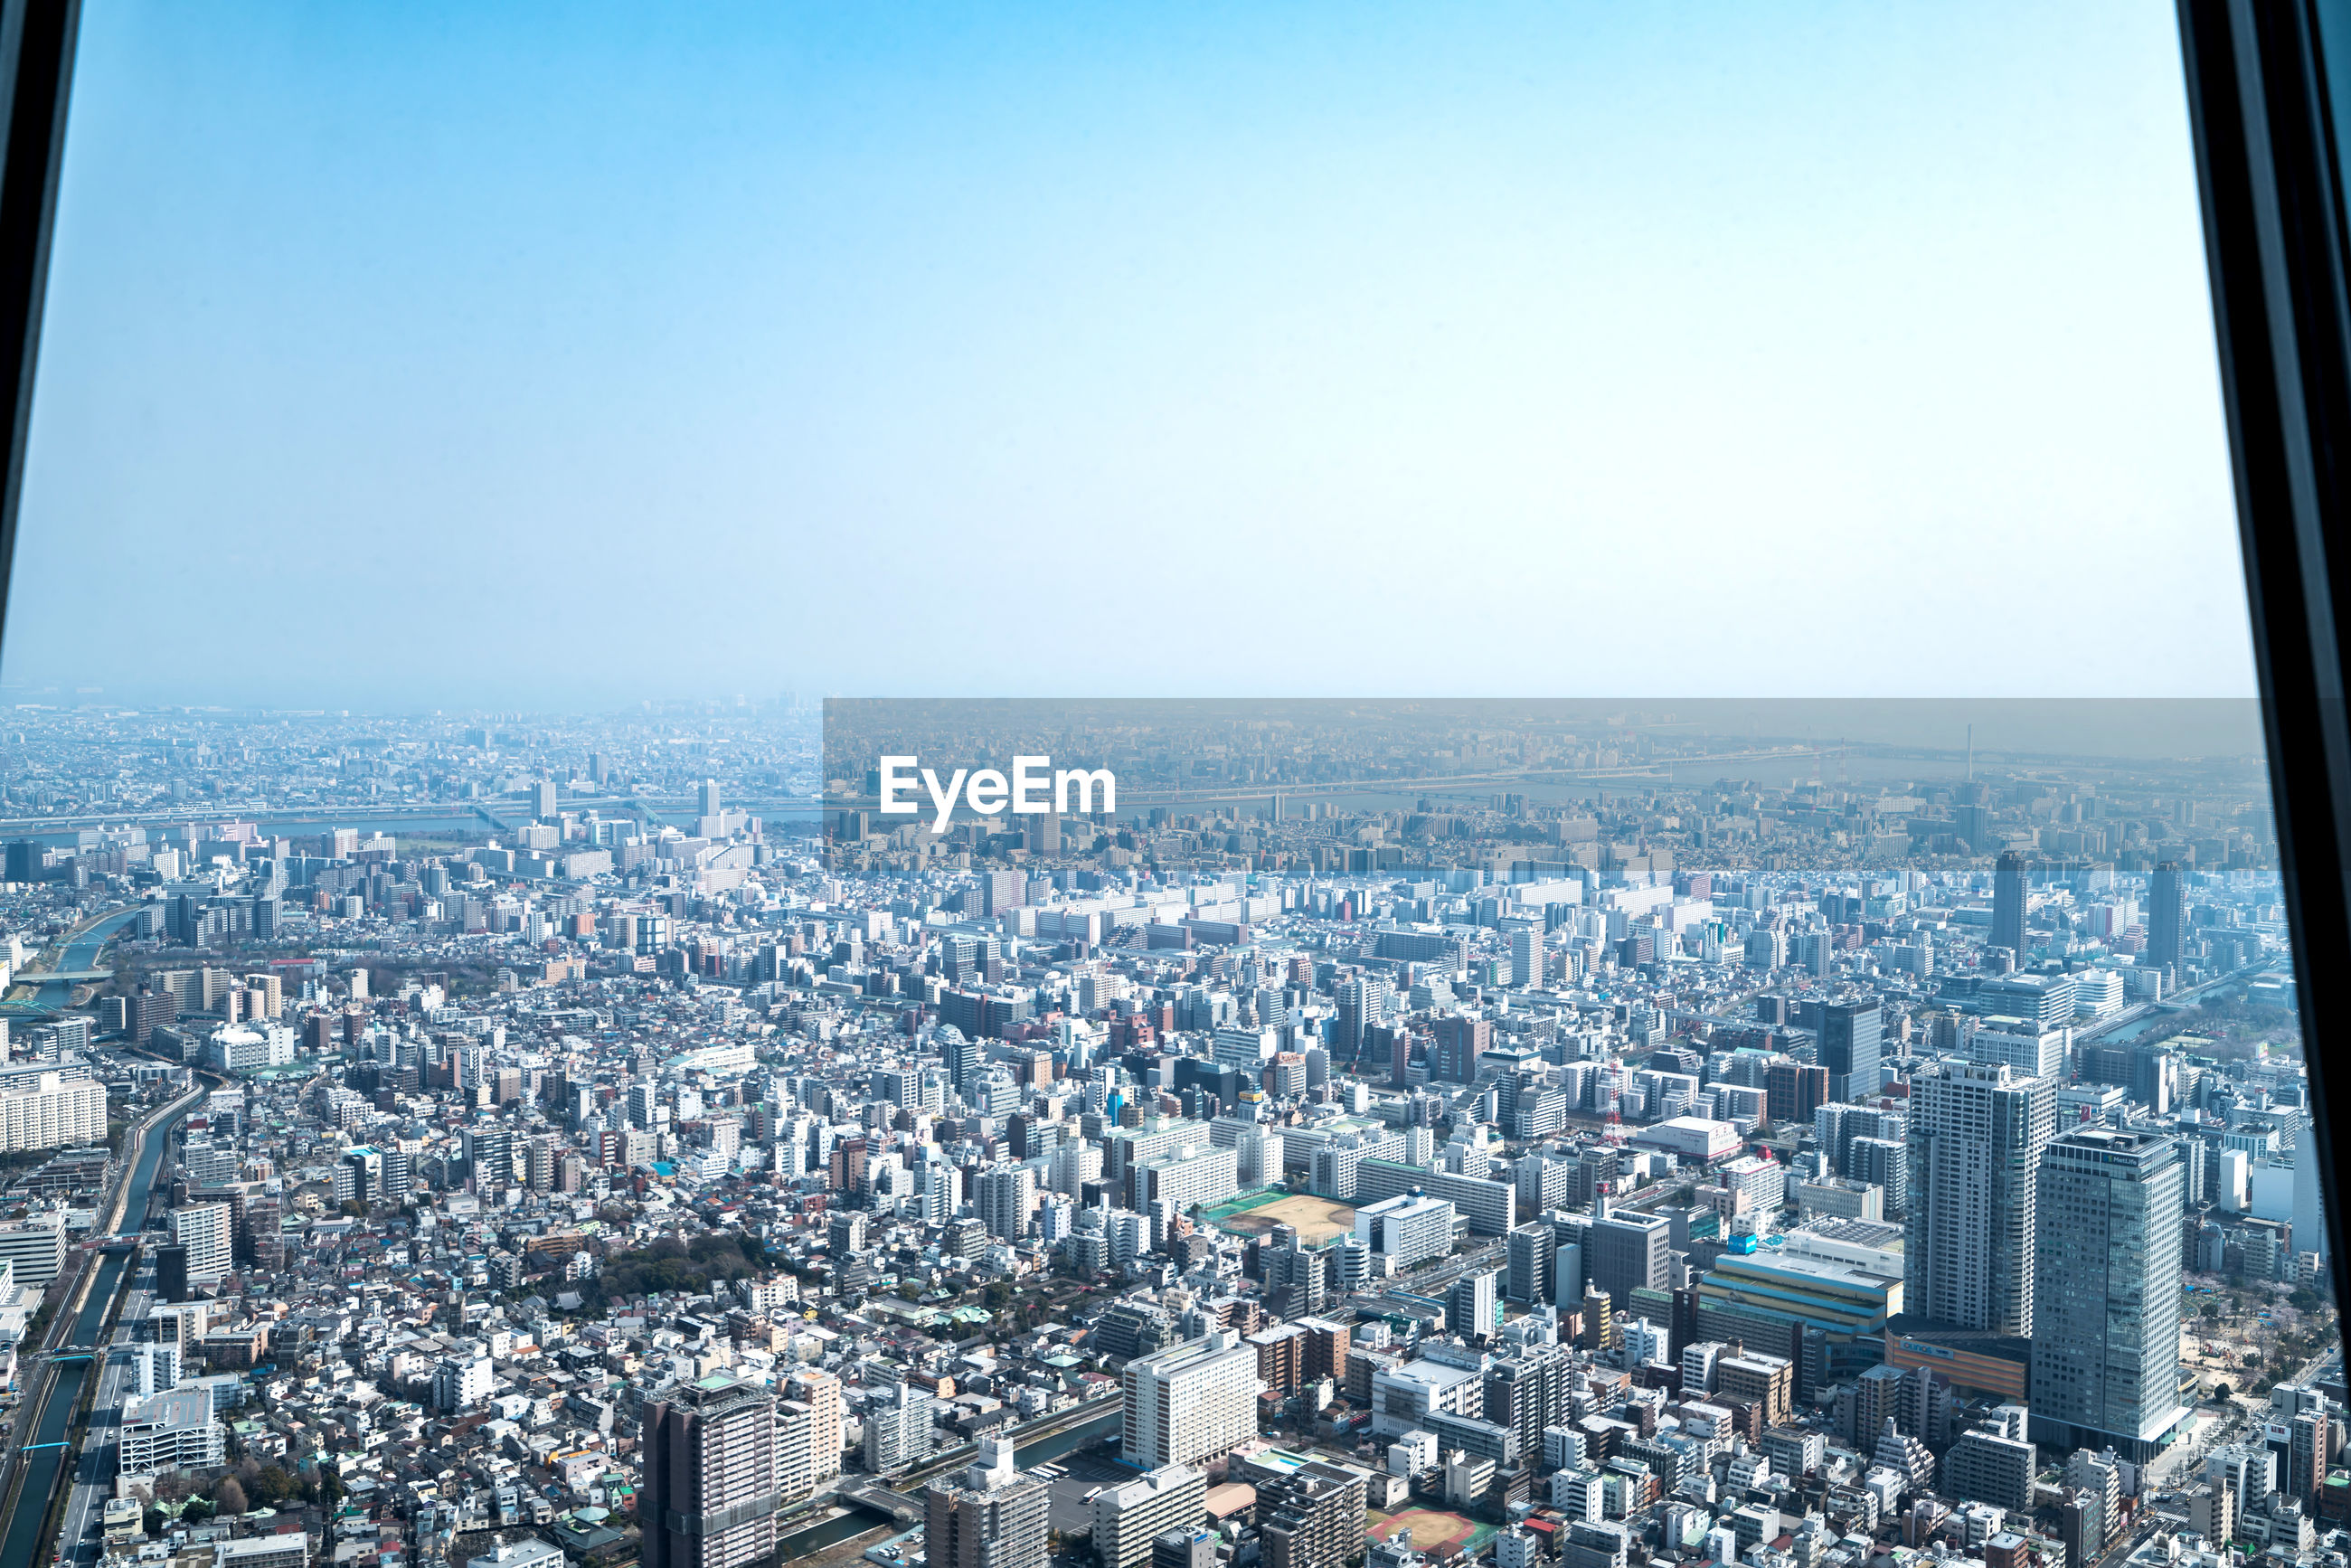 HIGH ANGLE VIEW OF CITY BUILDINGS AGAINST CLEAR SKY